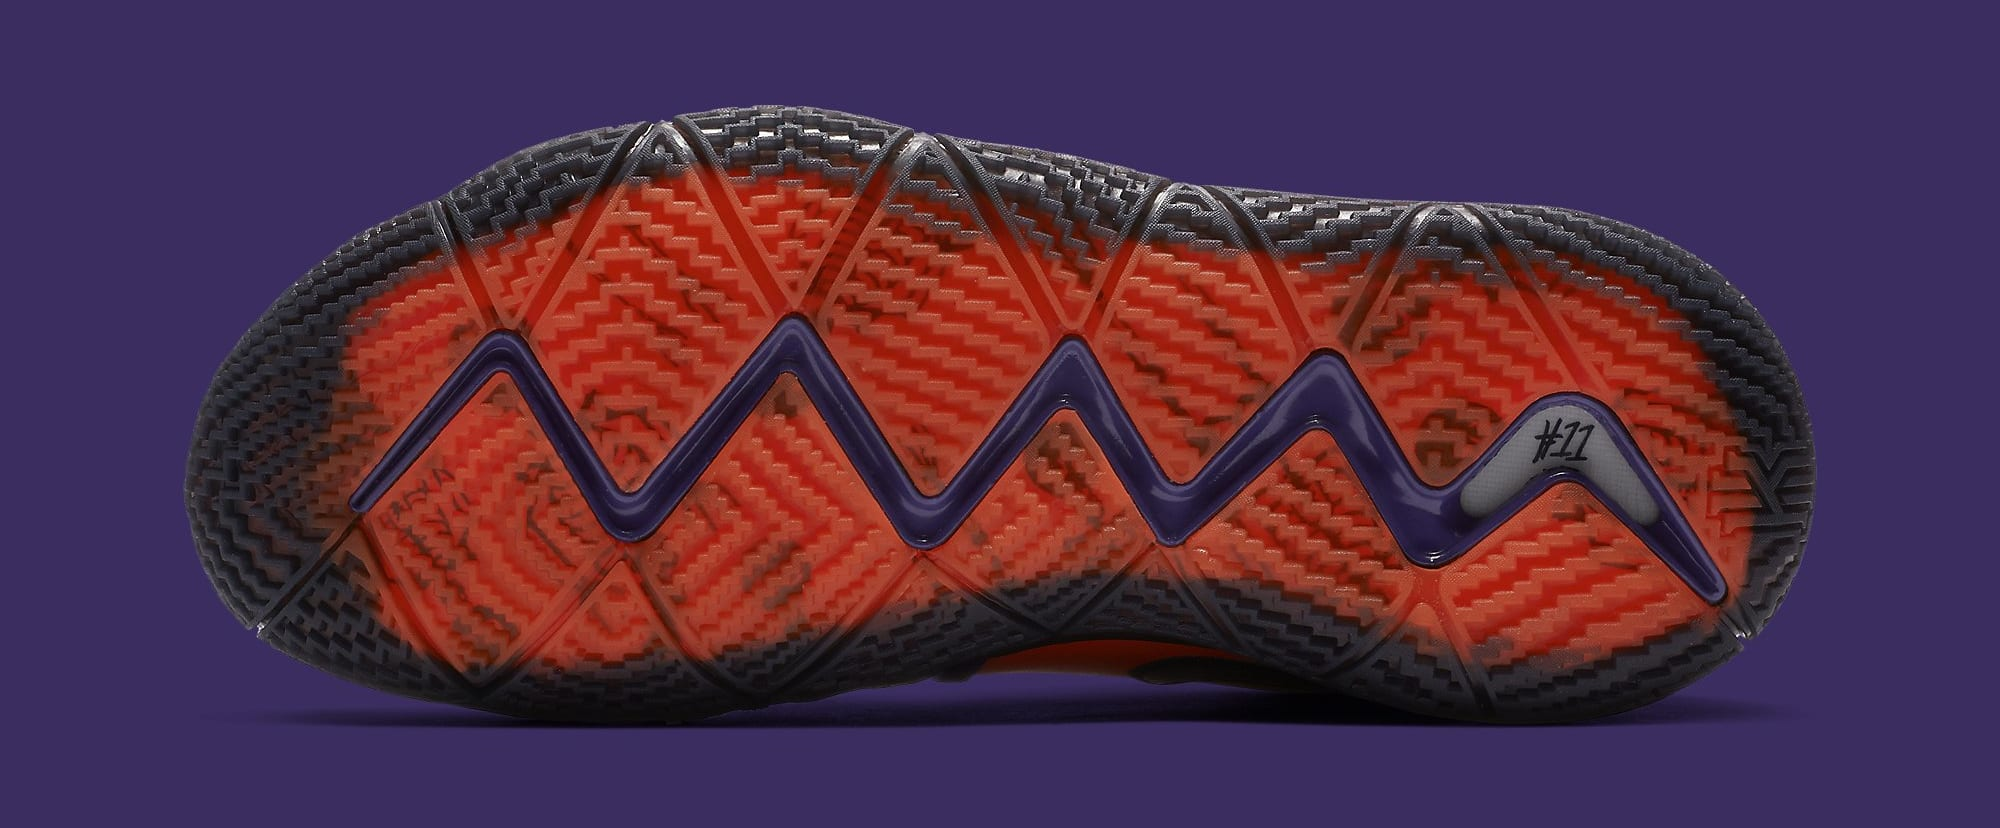 newest 9b853 dc9f9 Nike Kyrie 4 'Day of the Dead' CI0278-800 Release Date ...